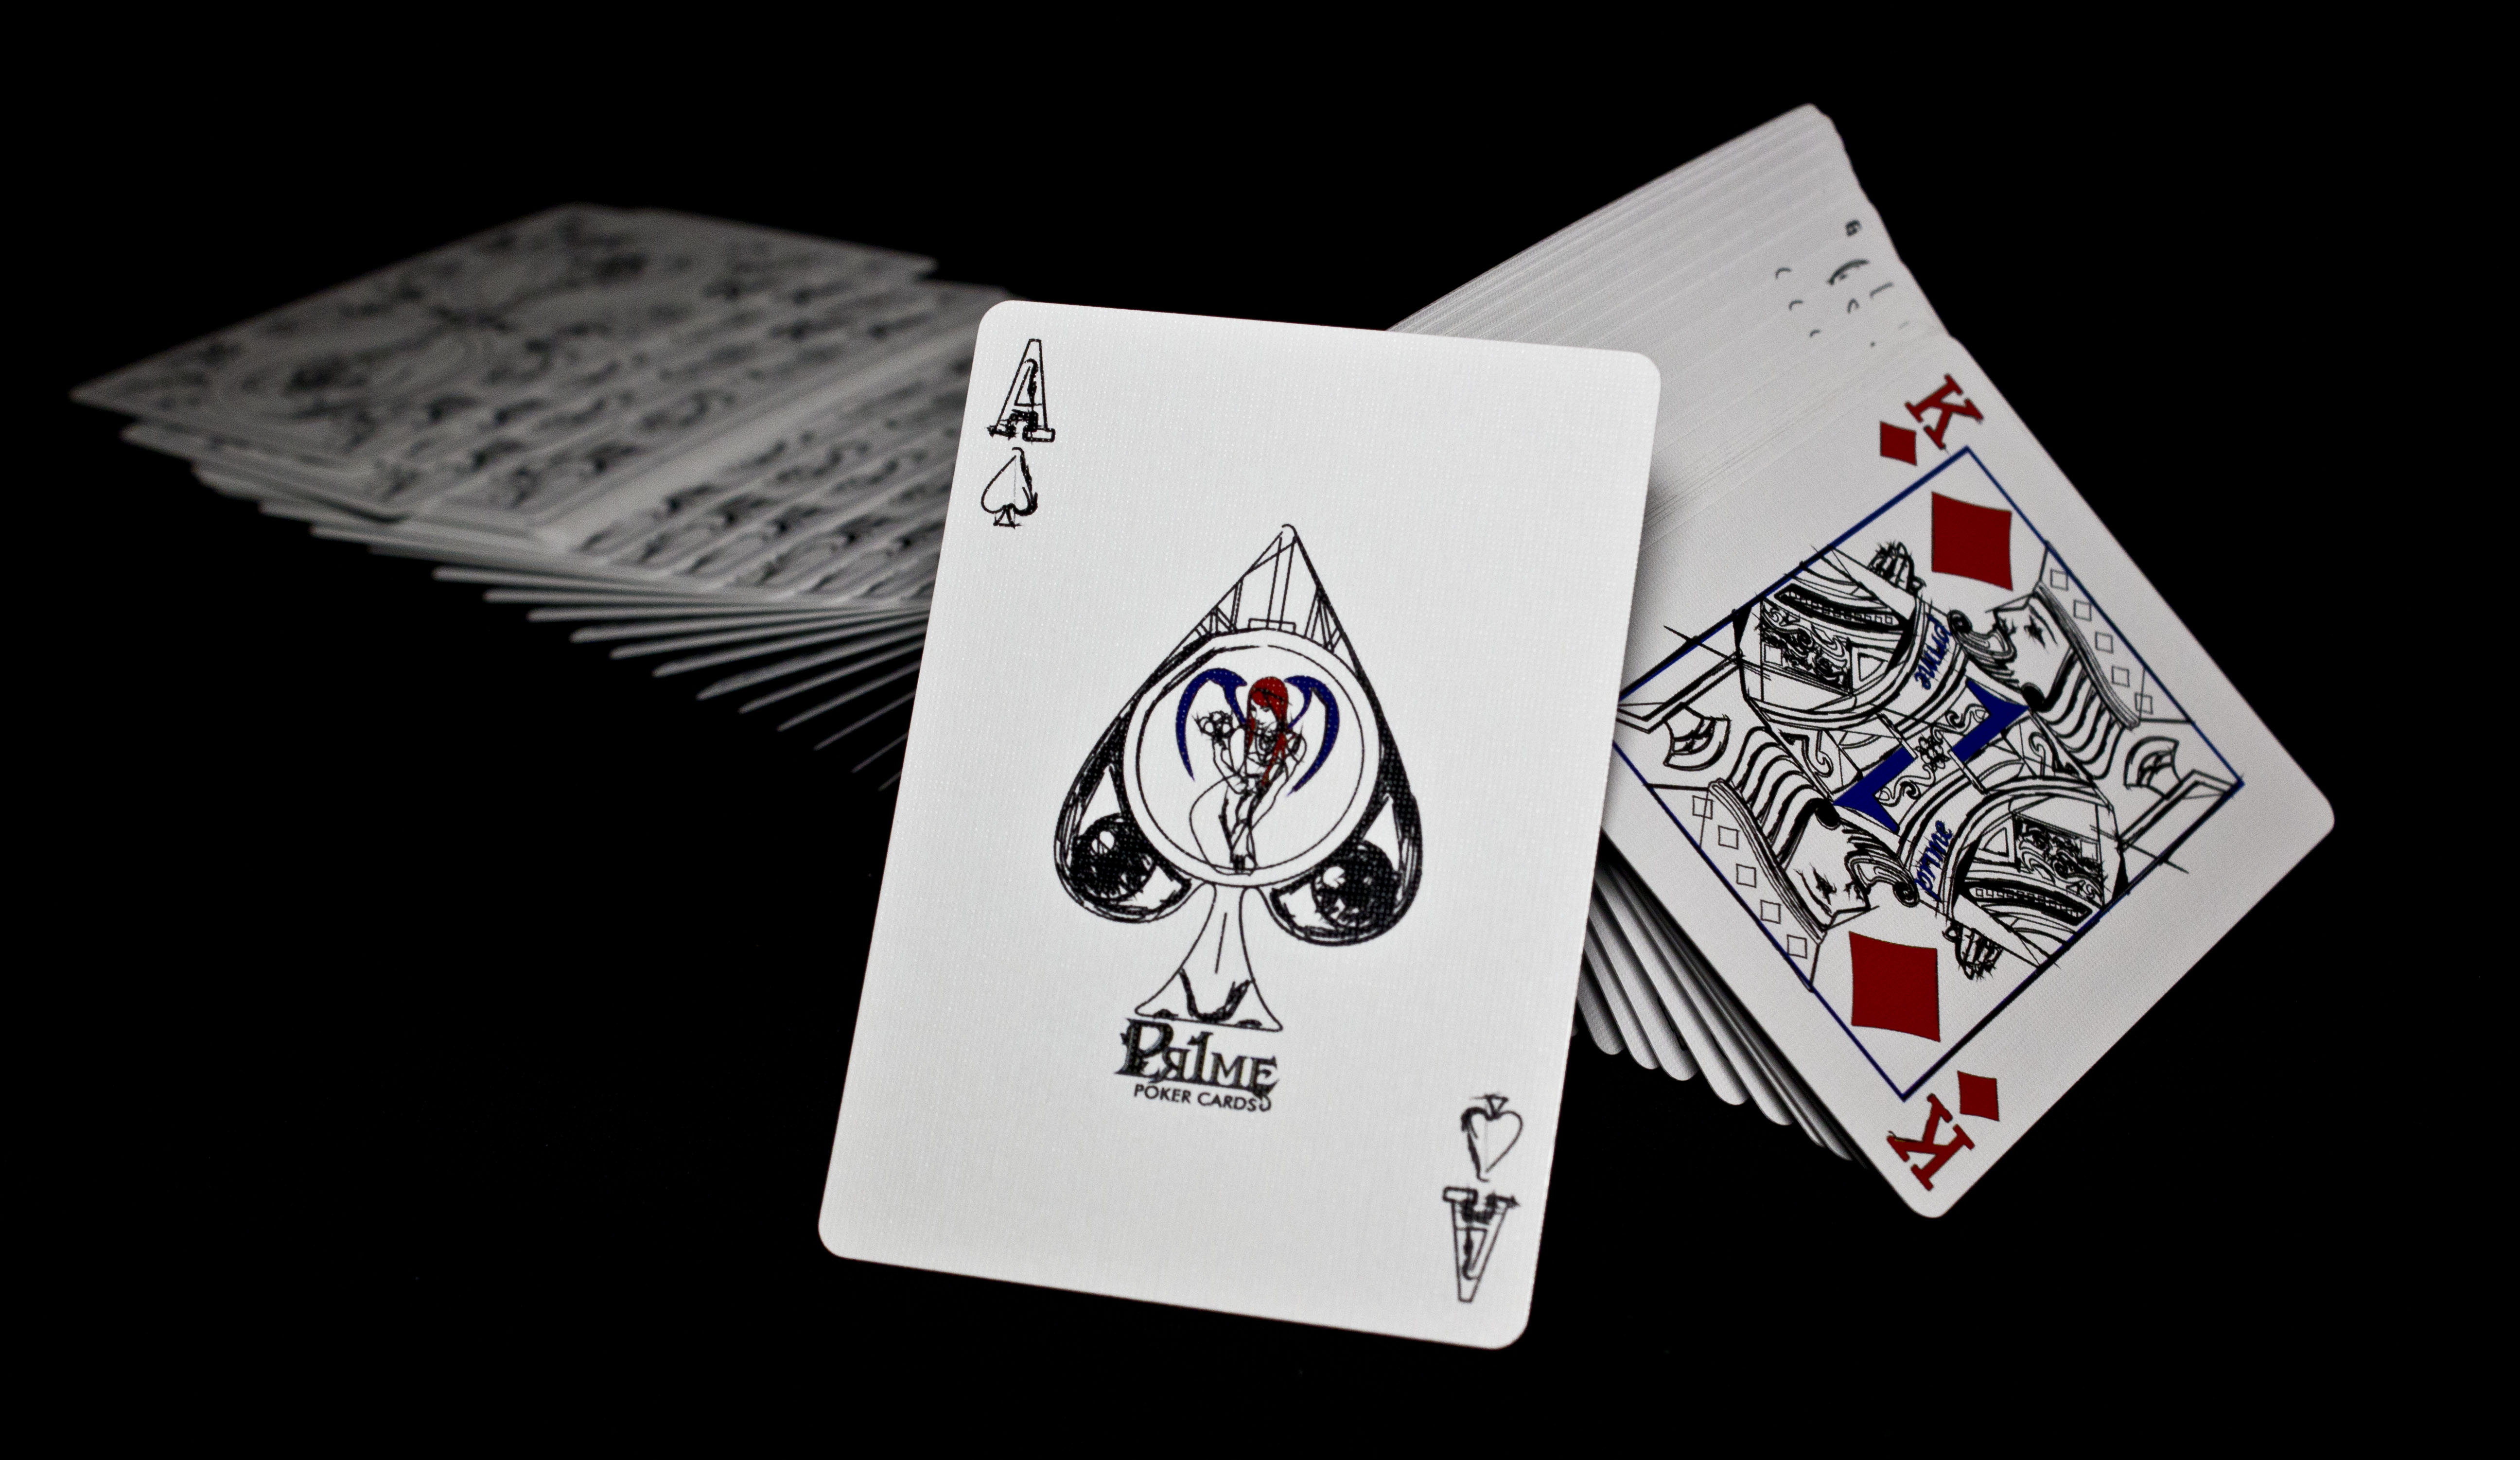 New Sketch deck. Interview to Massimo Gramiccioni of Pr1me playing ...